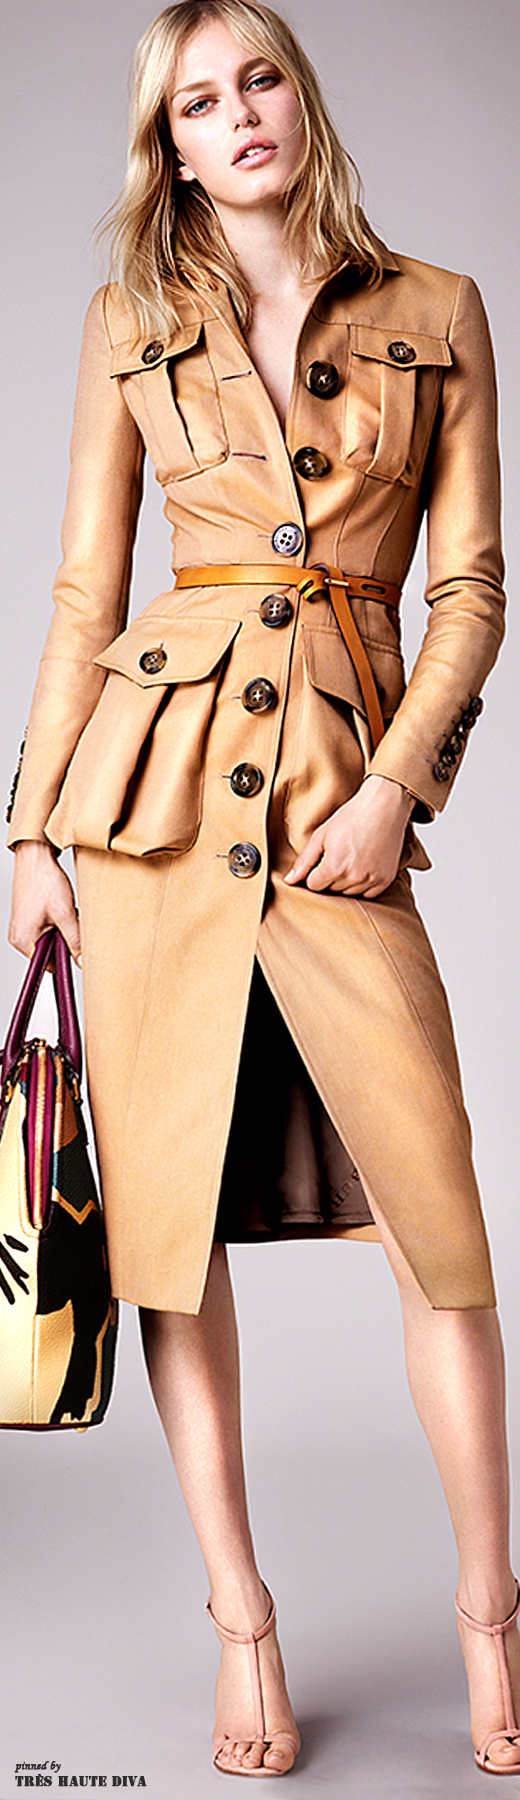 Burberry Prorsum Resort 2015 http://gtl.clothing/a_search.php#/post/Burberry/true @gtl_clothing #getthelook